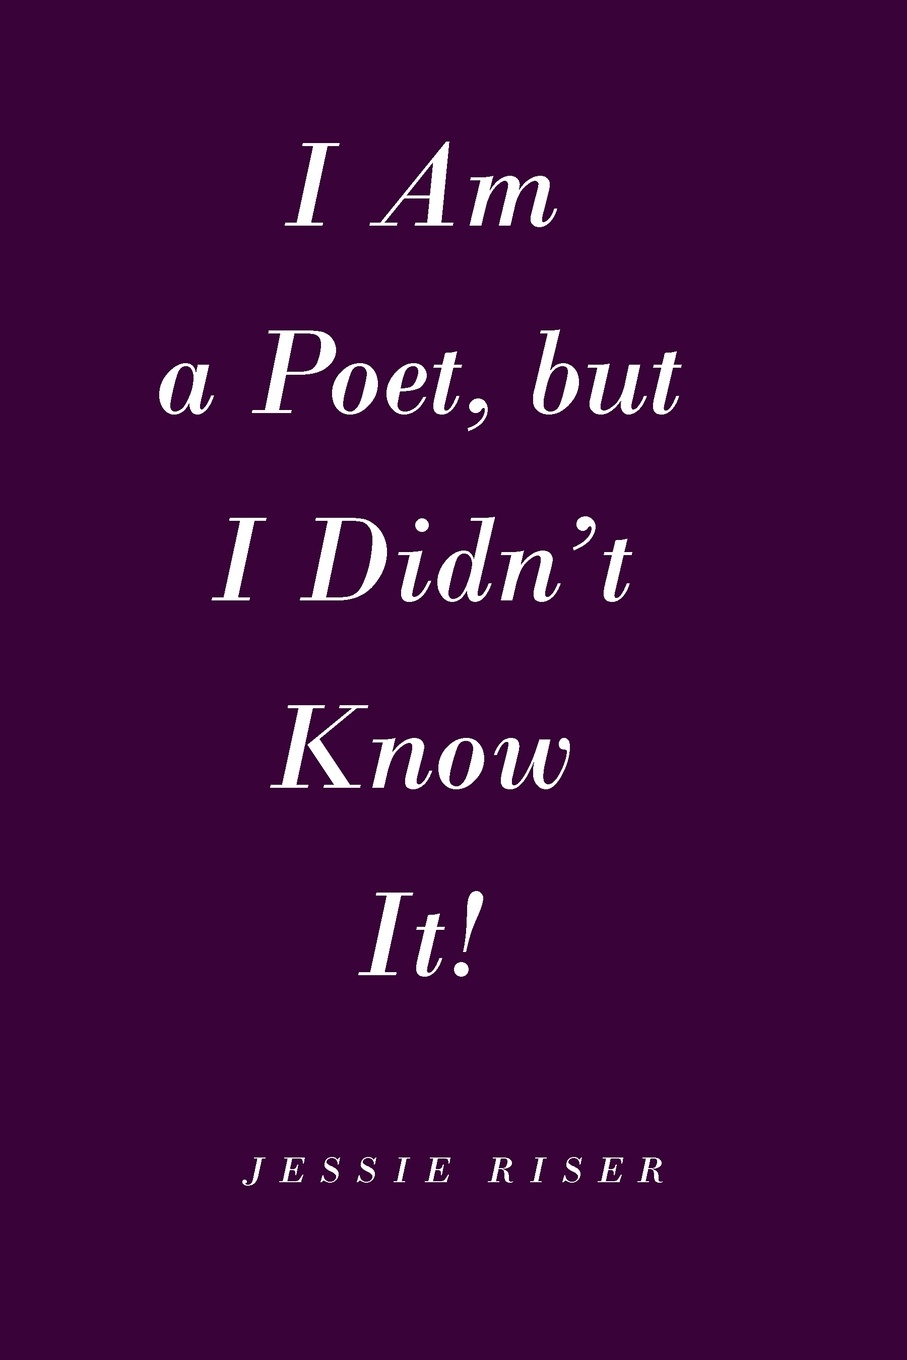 Jessie Riser I Am a Poet, but I Didn't Know It! kantaria a i know you